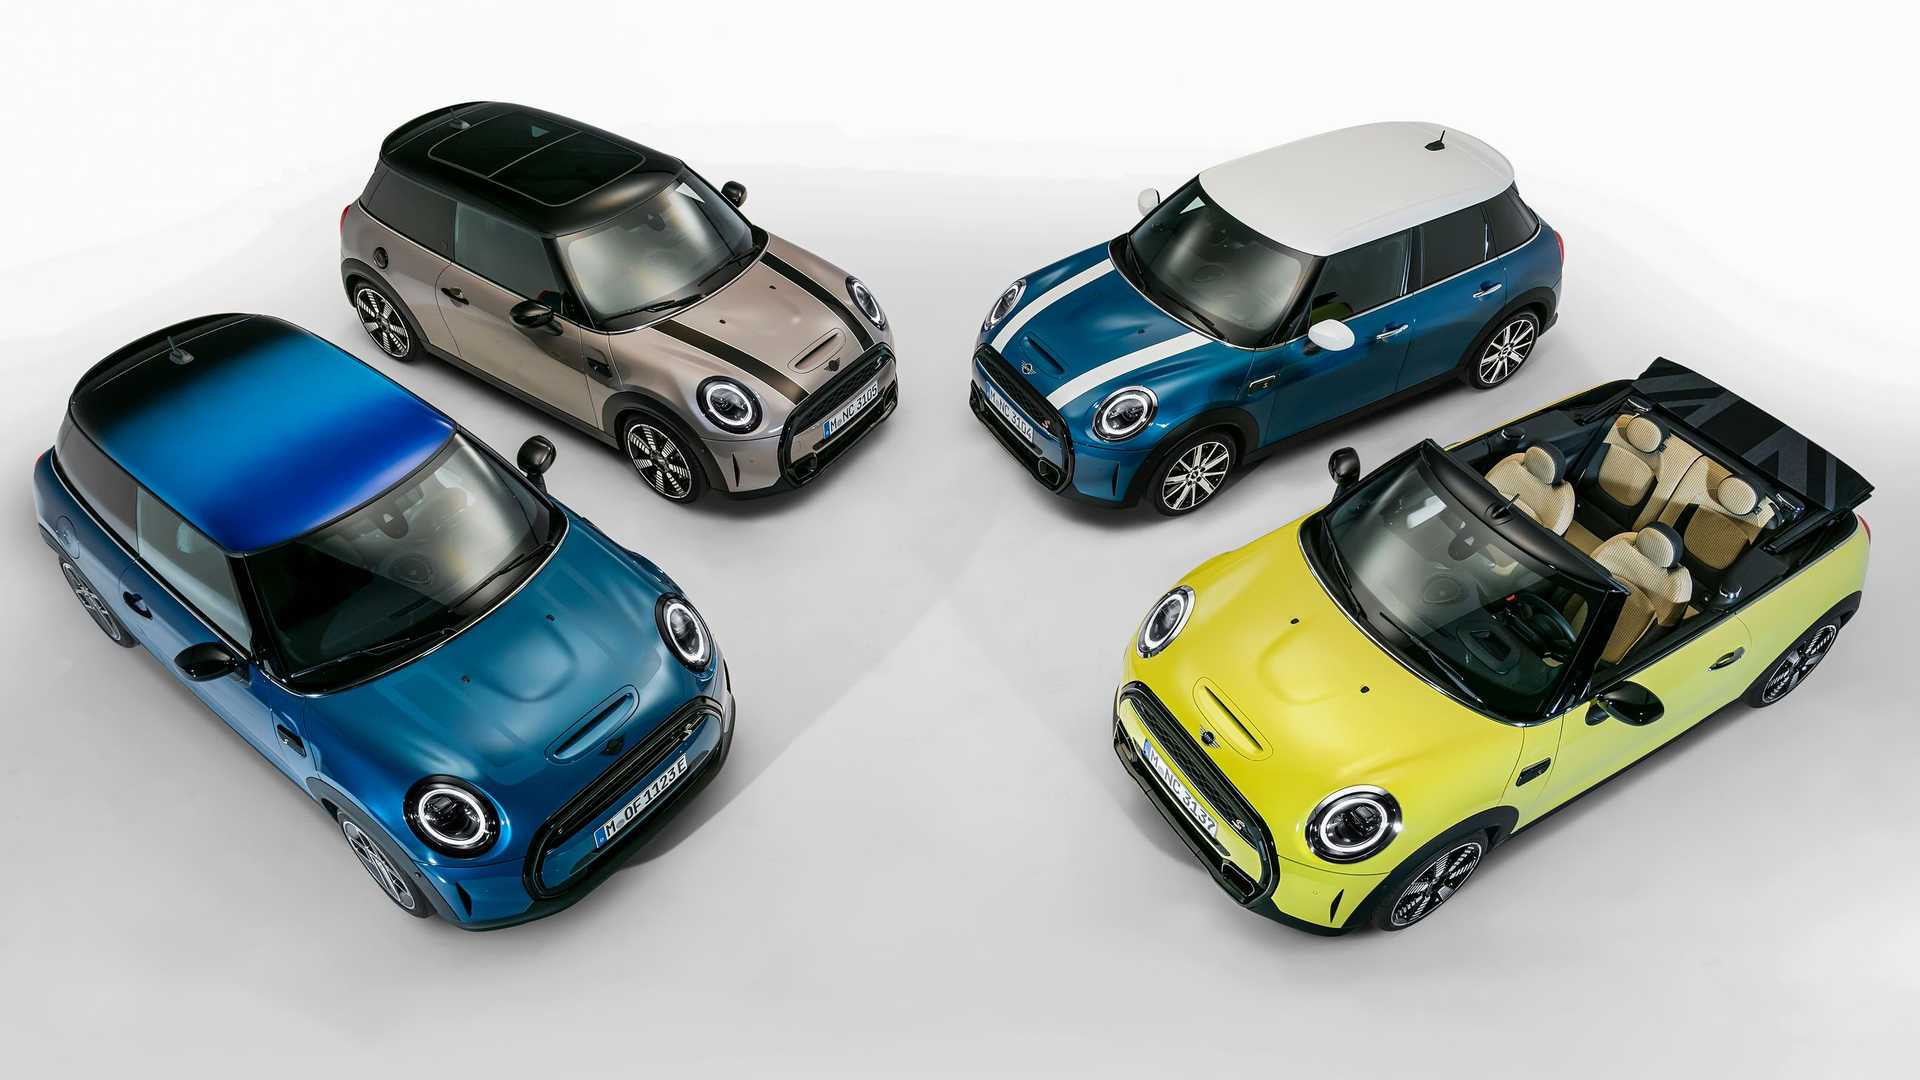 The three-door Mini hatchback has been around since 2013, and Autocar now claims that the next generation is already in its late stages of development, with a premiere scheduled for 2023.